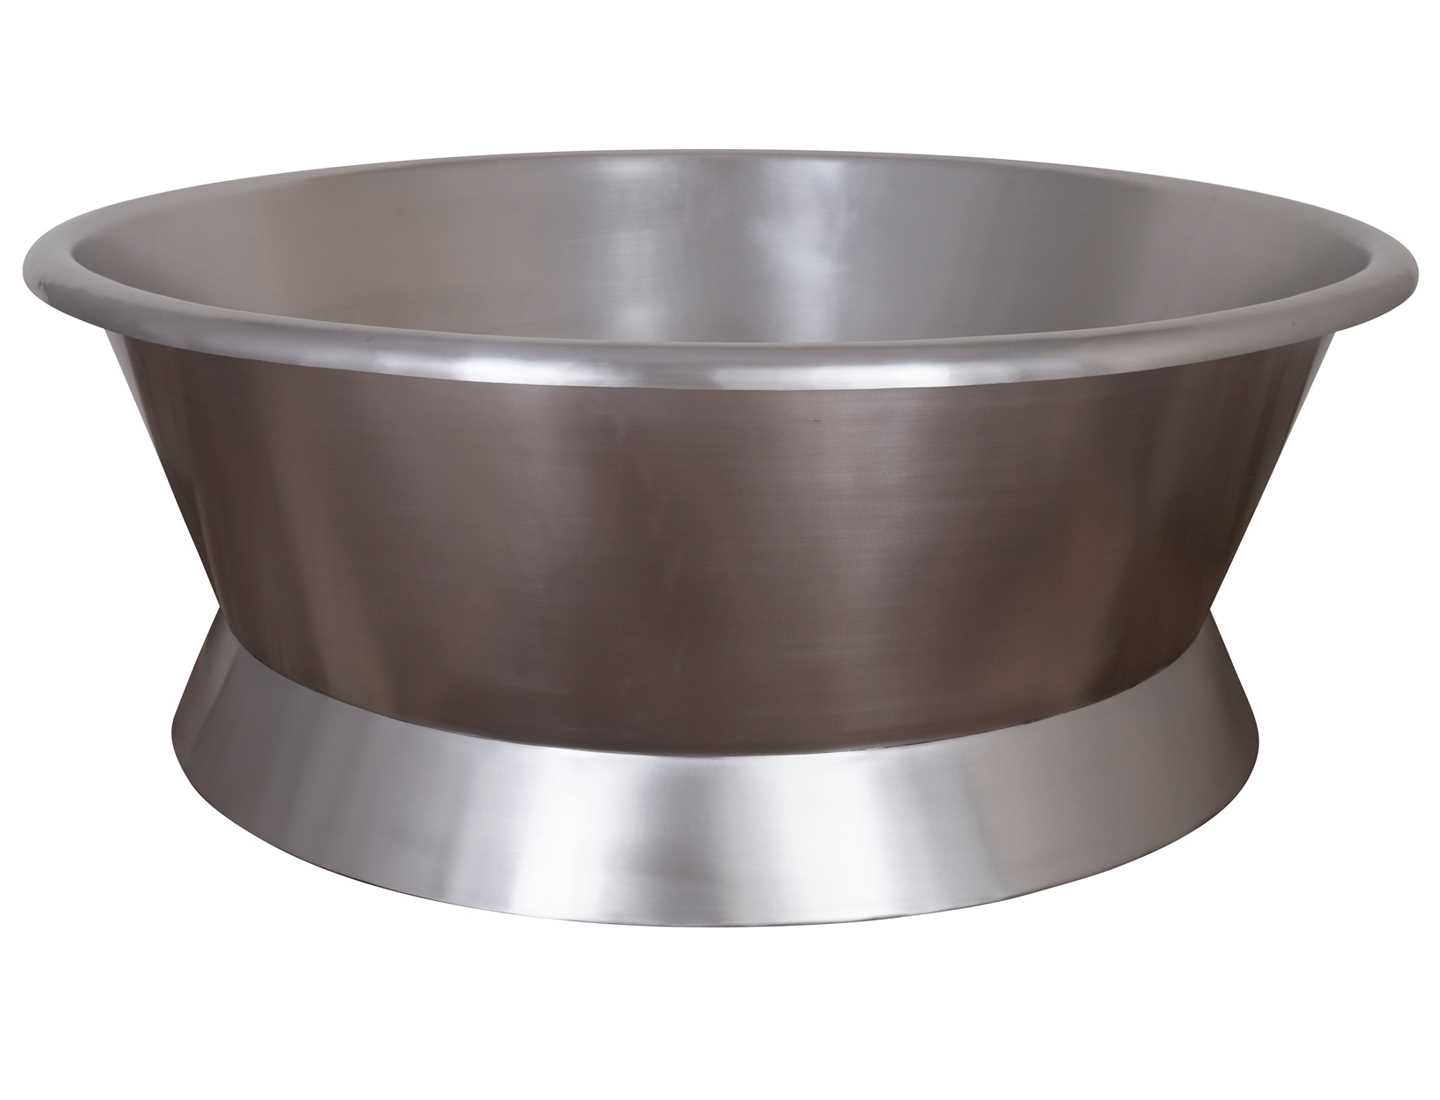 Giotti Stainless Steel Round Bath Plinth